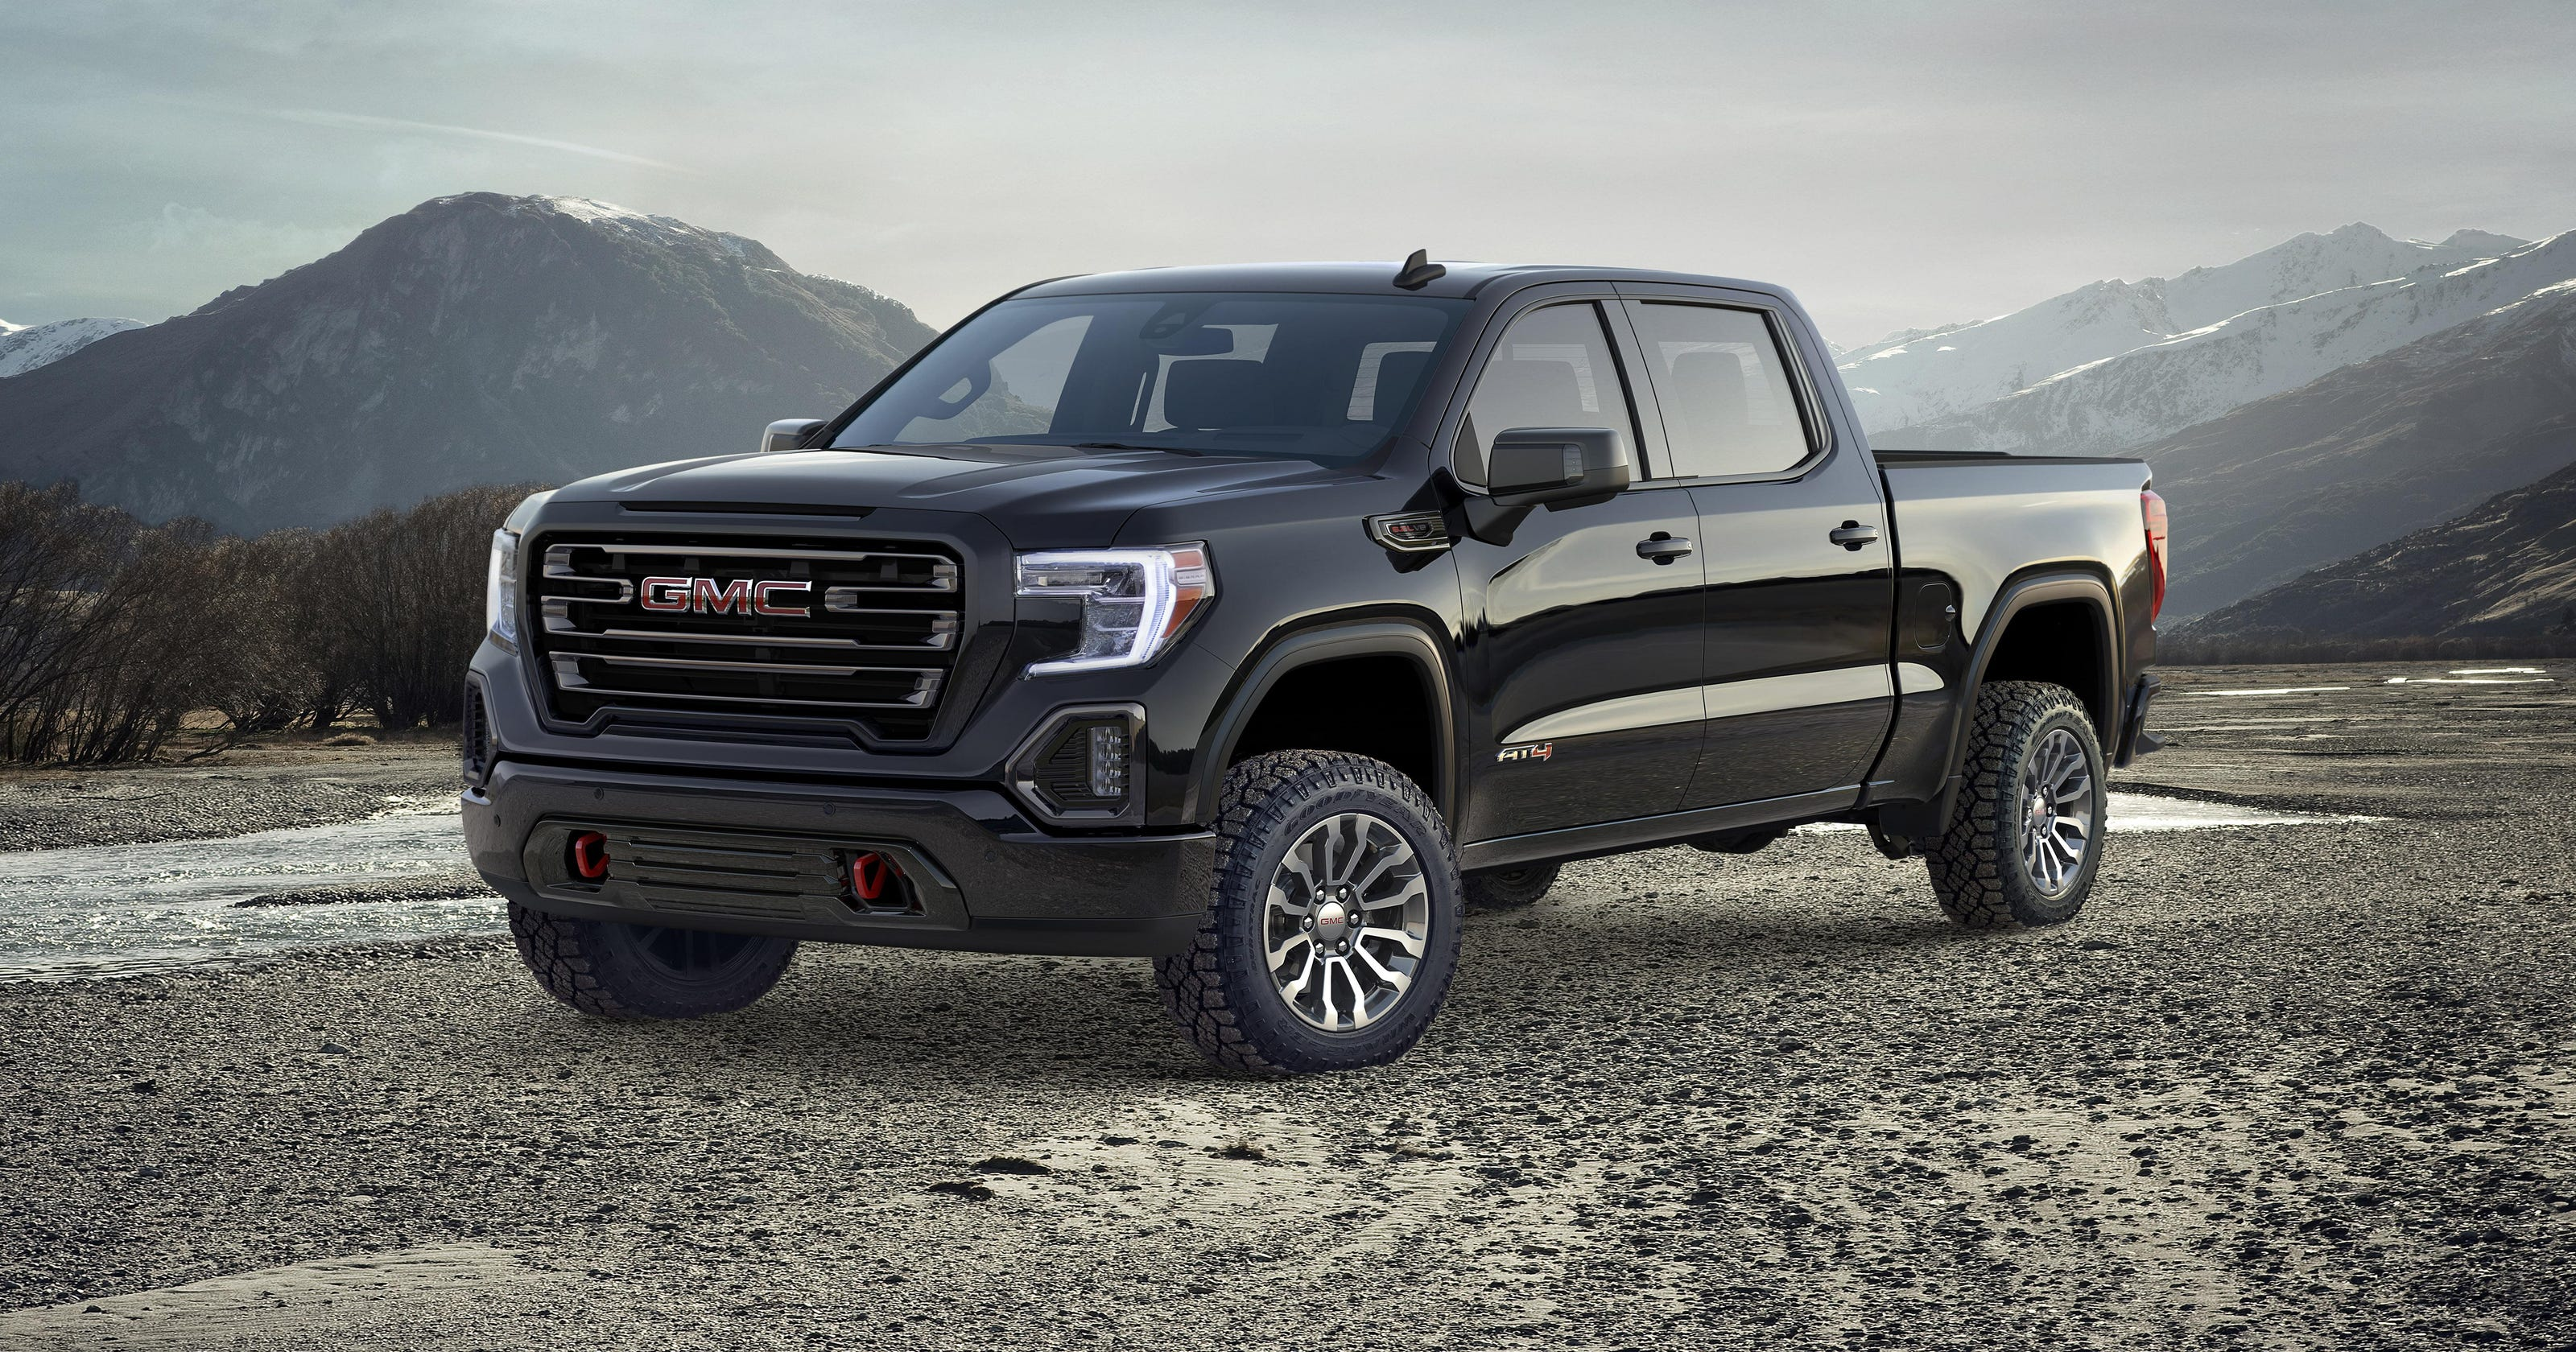 Gmc Debuts First Off Road Package On 2019 Sierra At4 At